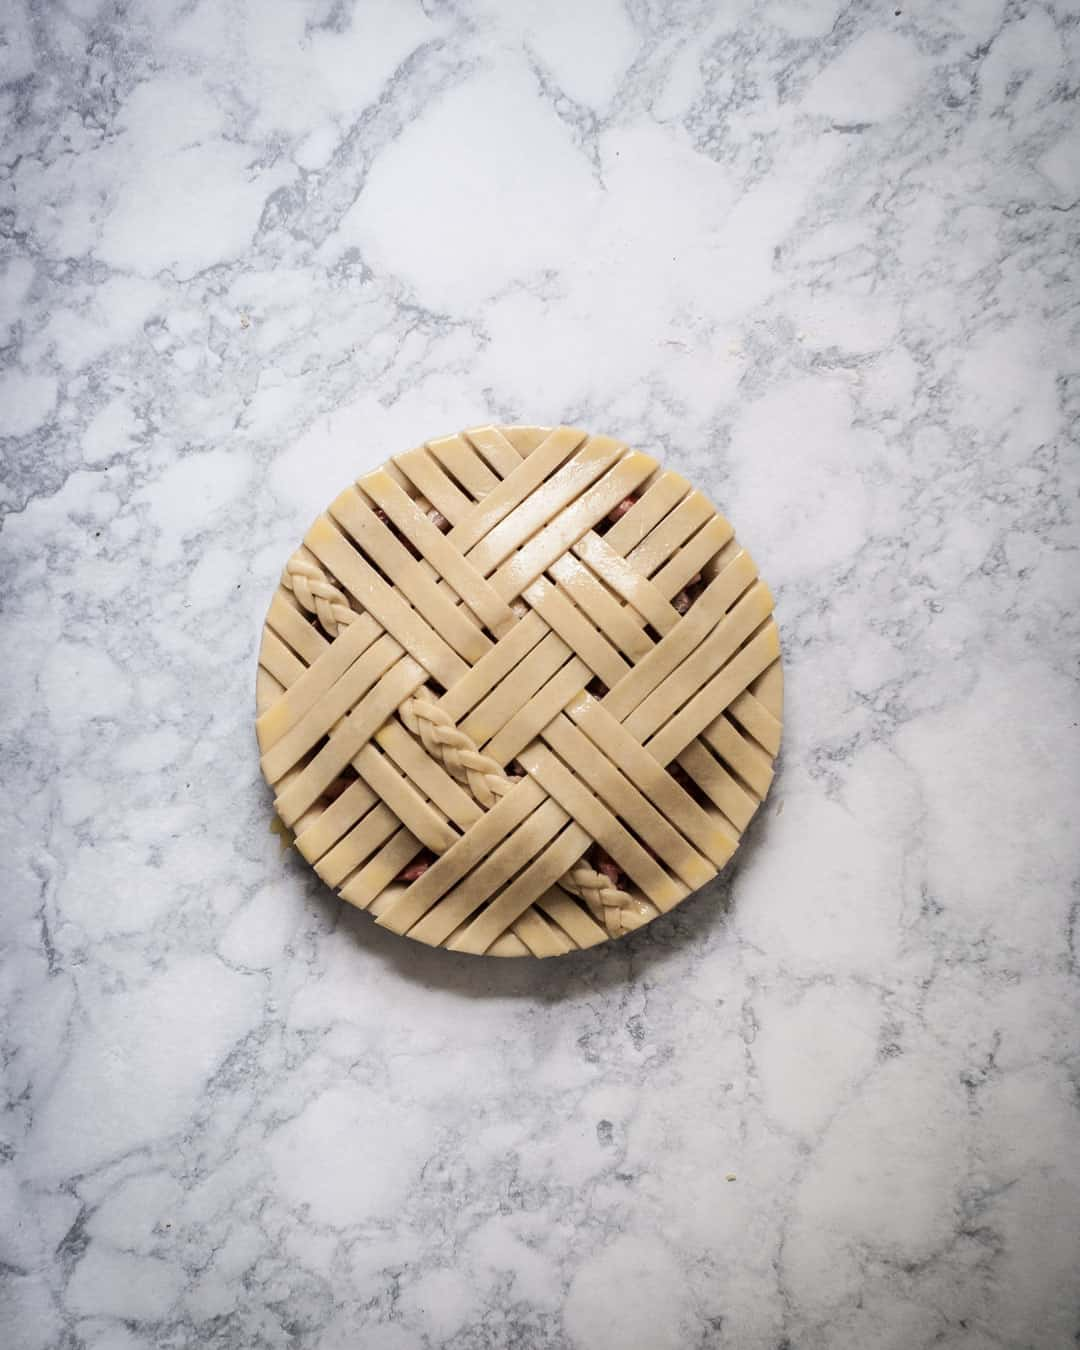 Marble surface and completed lattice pie crust with egg wash brushed on top